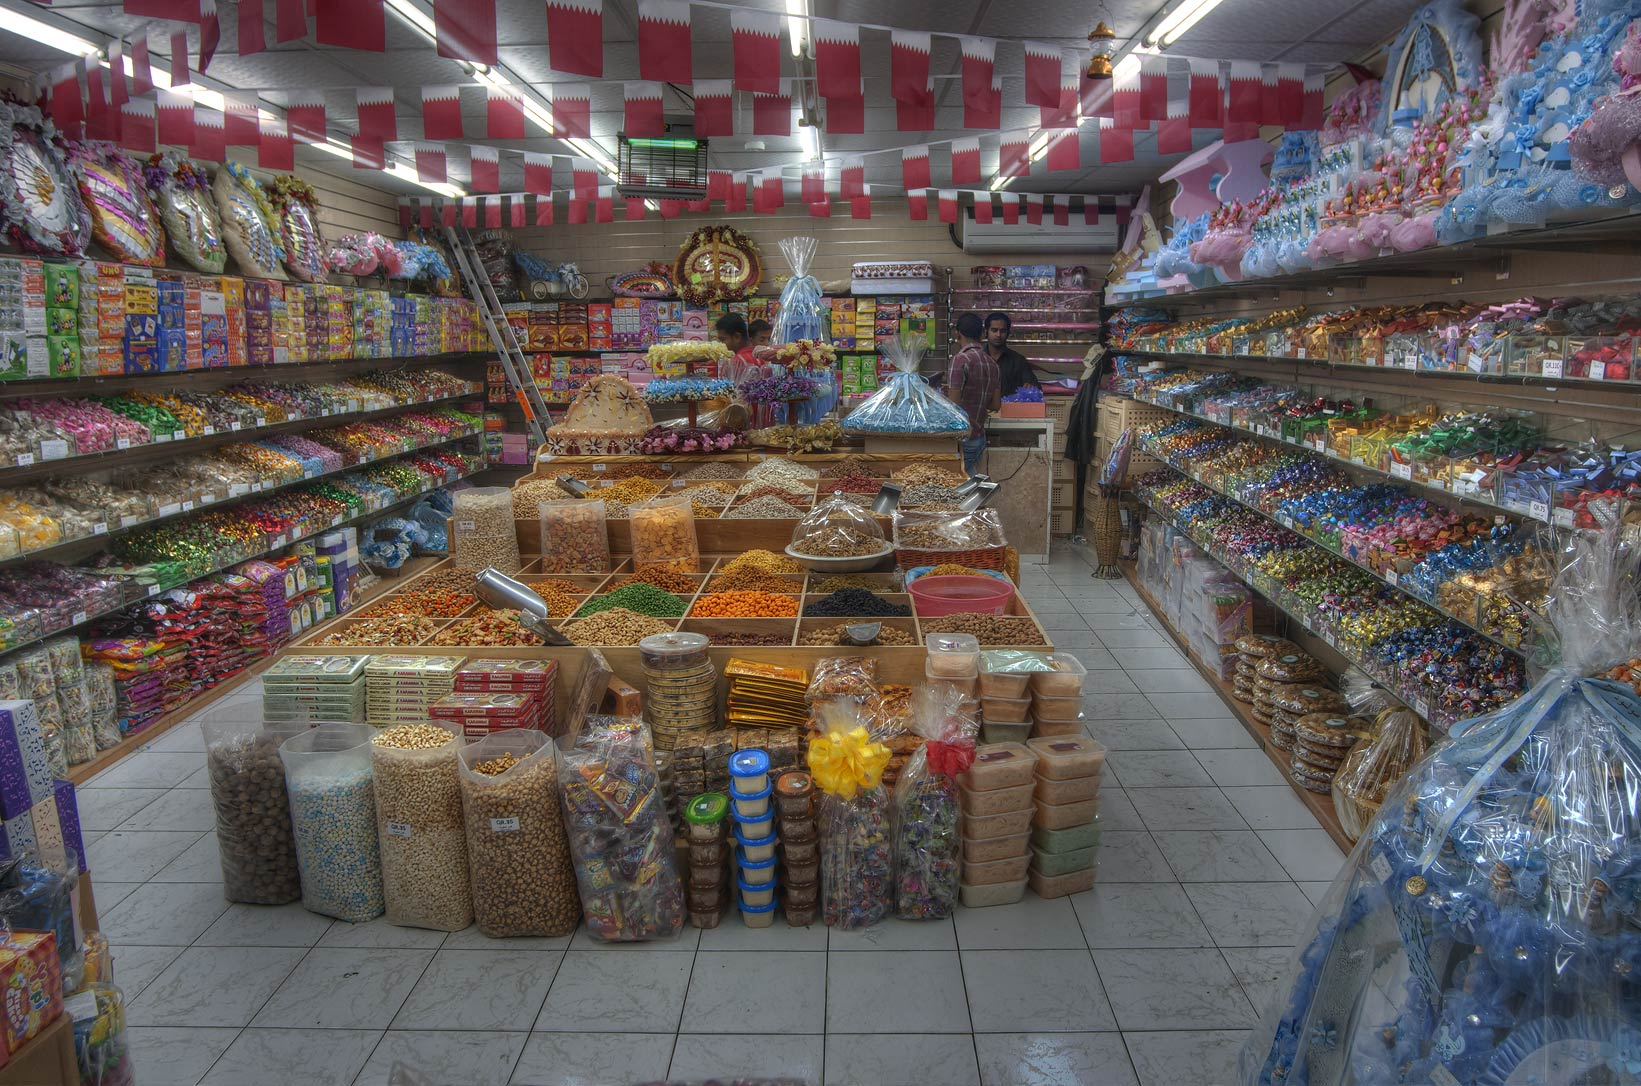 Spice shop in Souq Waqif (Old Market). Doha, Qatar